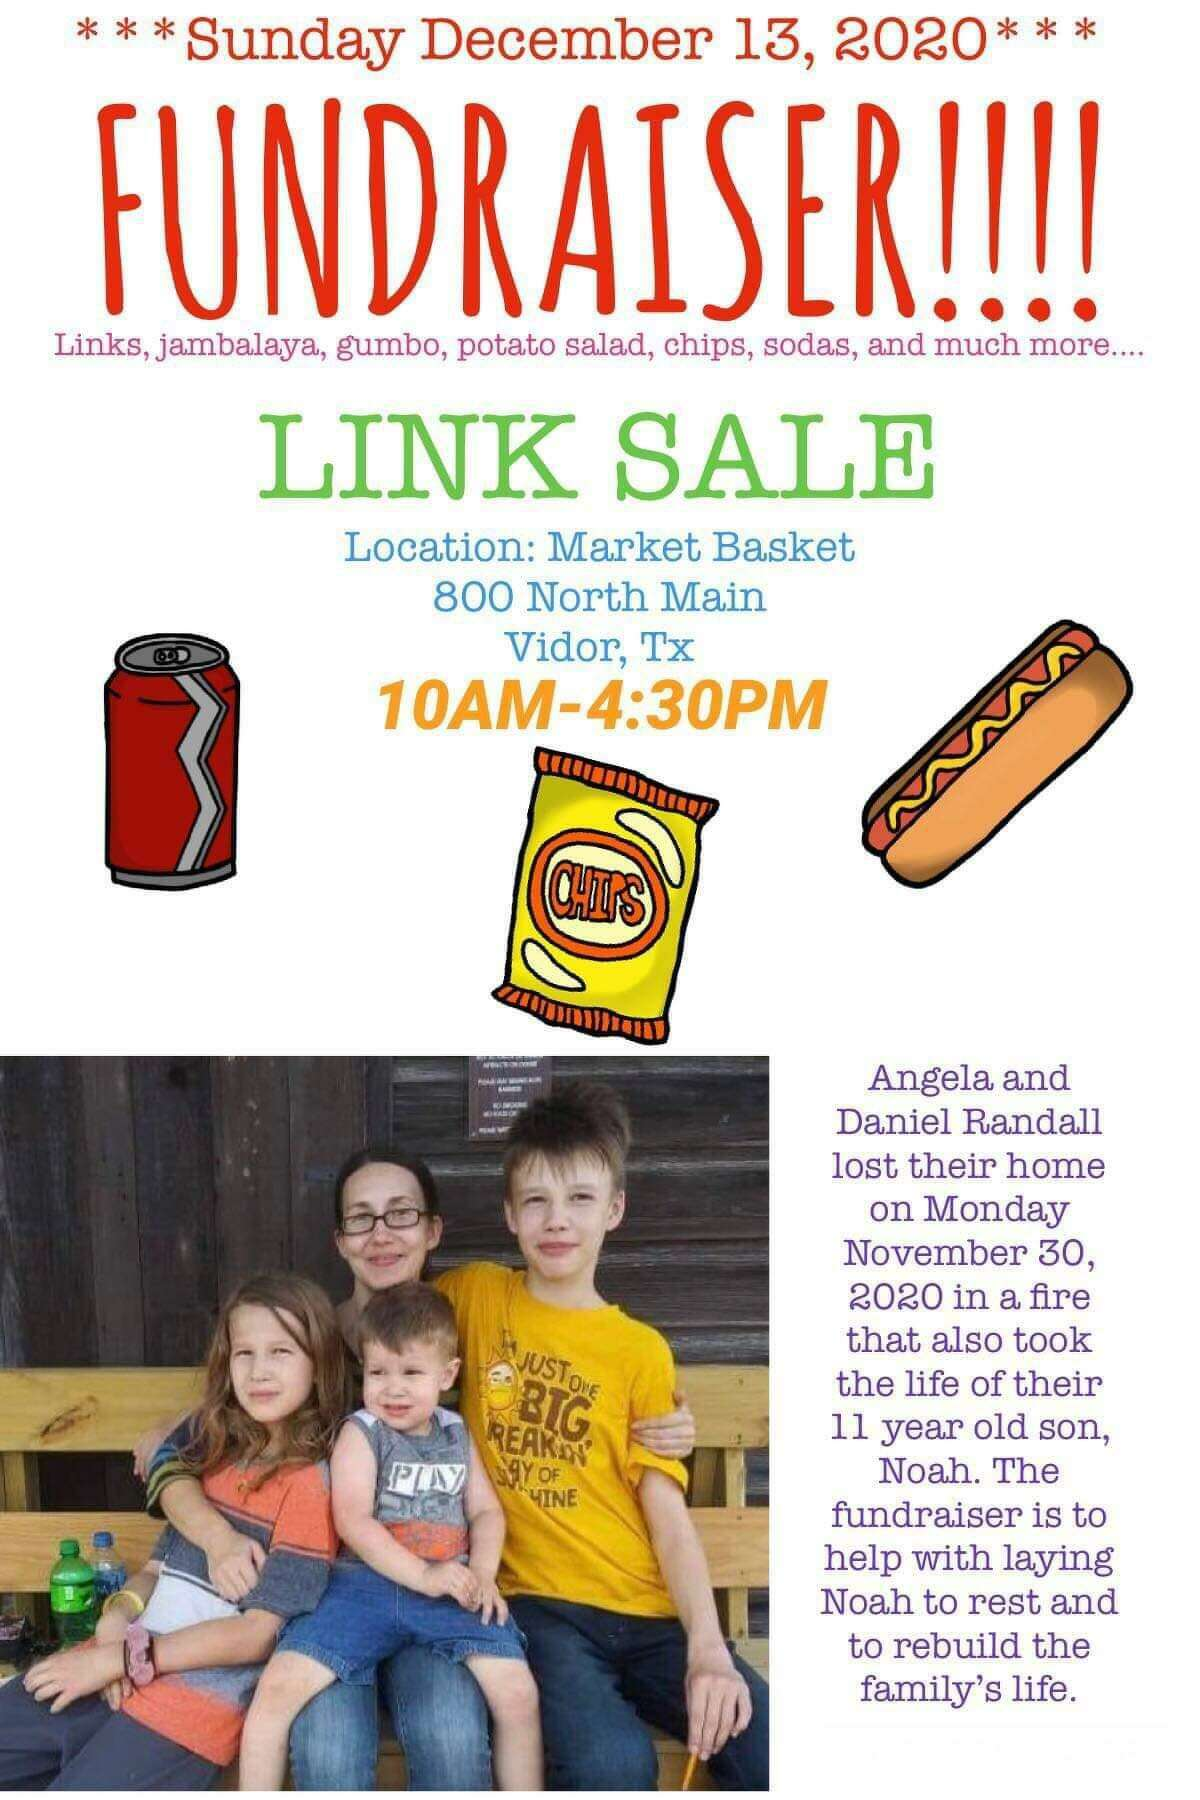 A link sale to benefit the family that lost their home in a house fire will be held on Sunday, Dec. 13 from 10 a.m.- 4:30 p.m. at the Market Basket on 800 N. Main in Vidor, Texas.